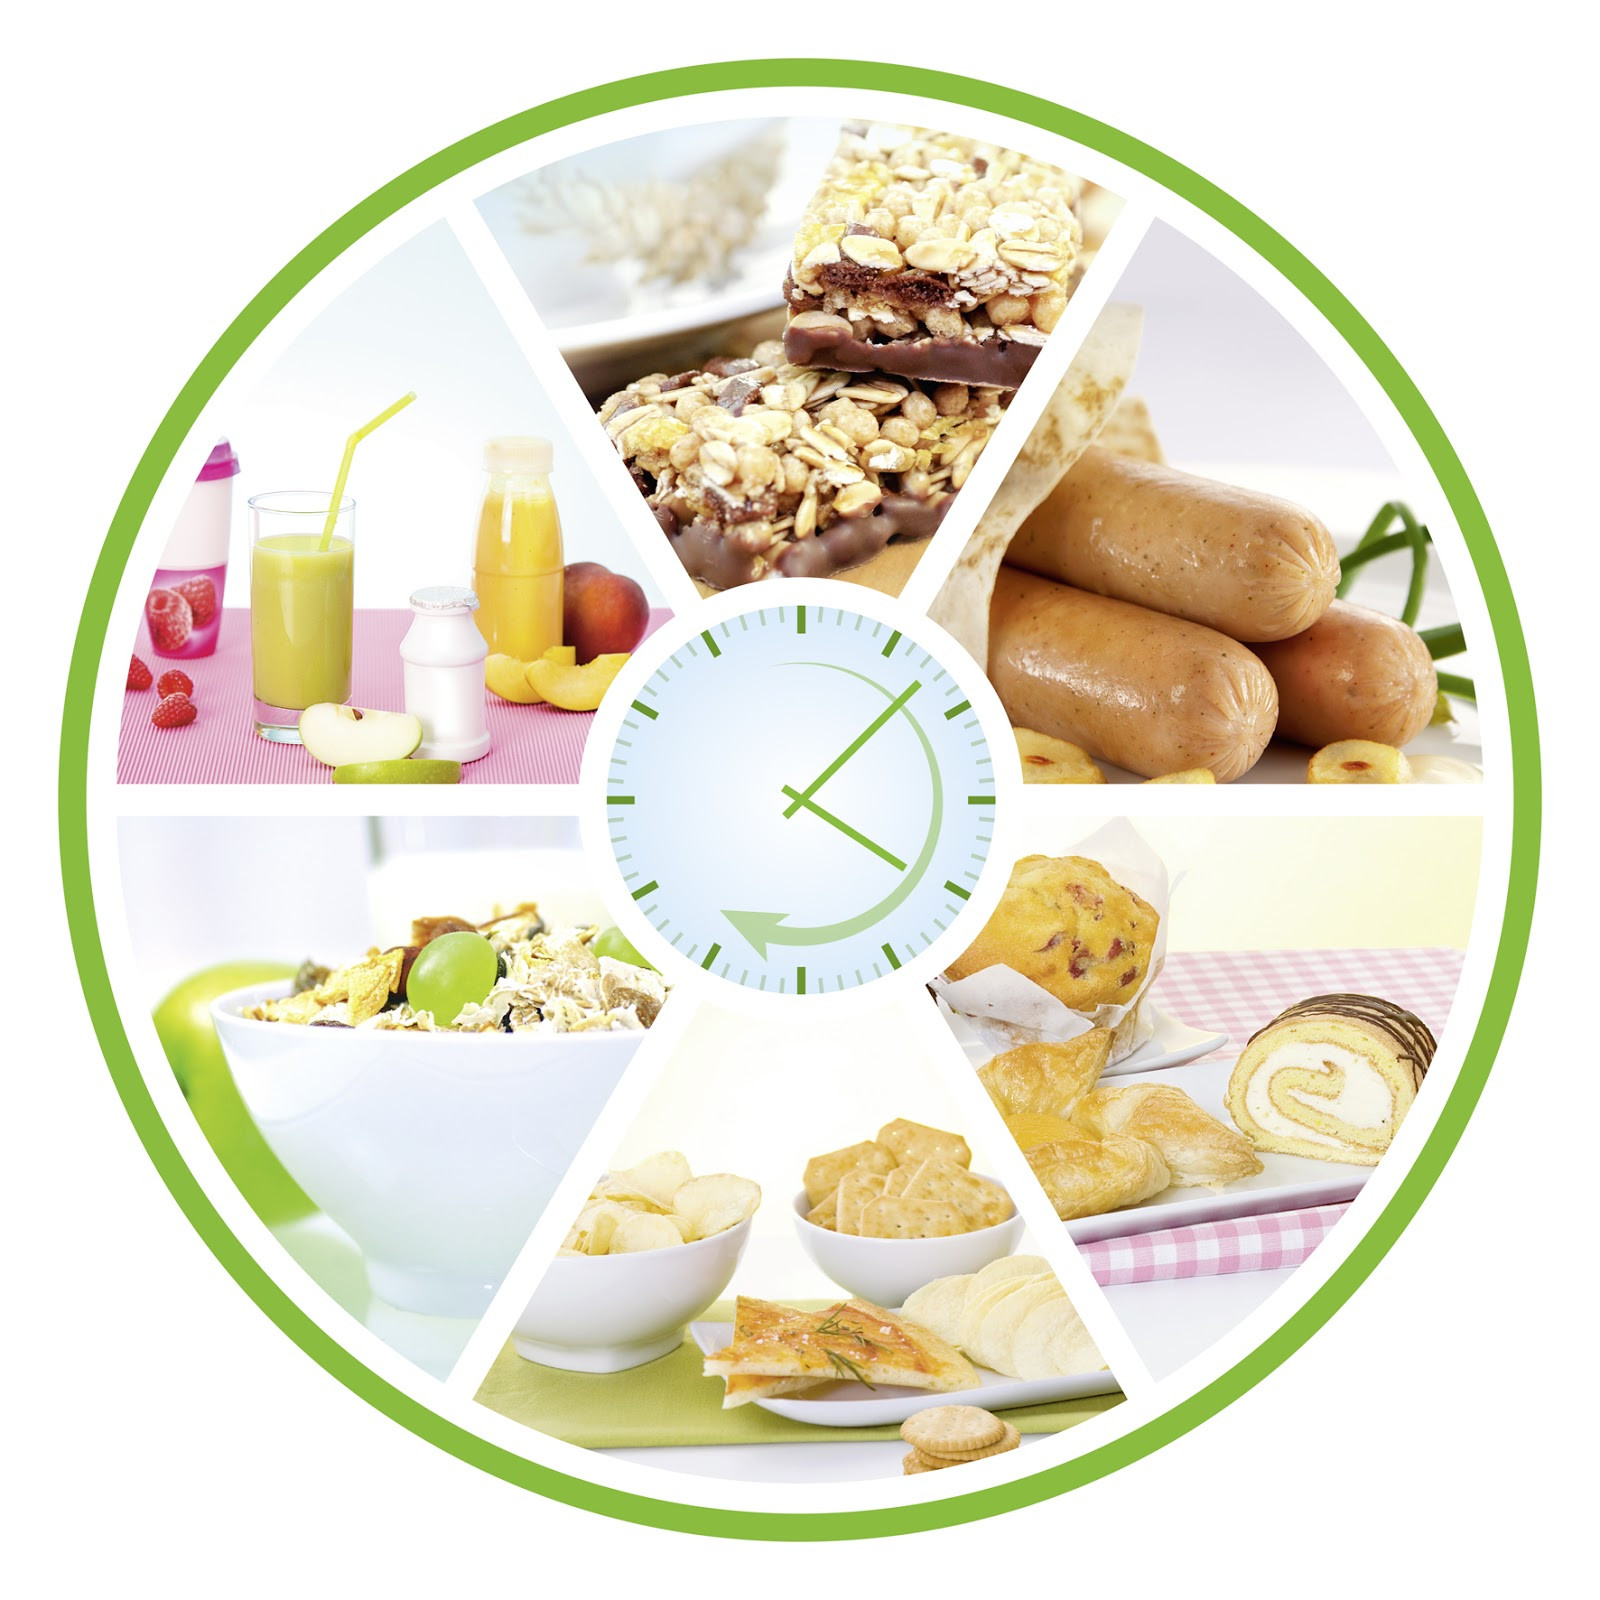 Healthy Snacks Throughout The Day  DIET WHAT IT REALLY MEANS Healthy Snacking